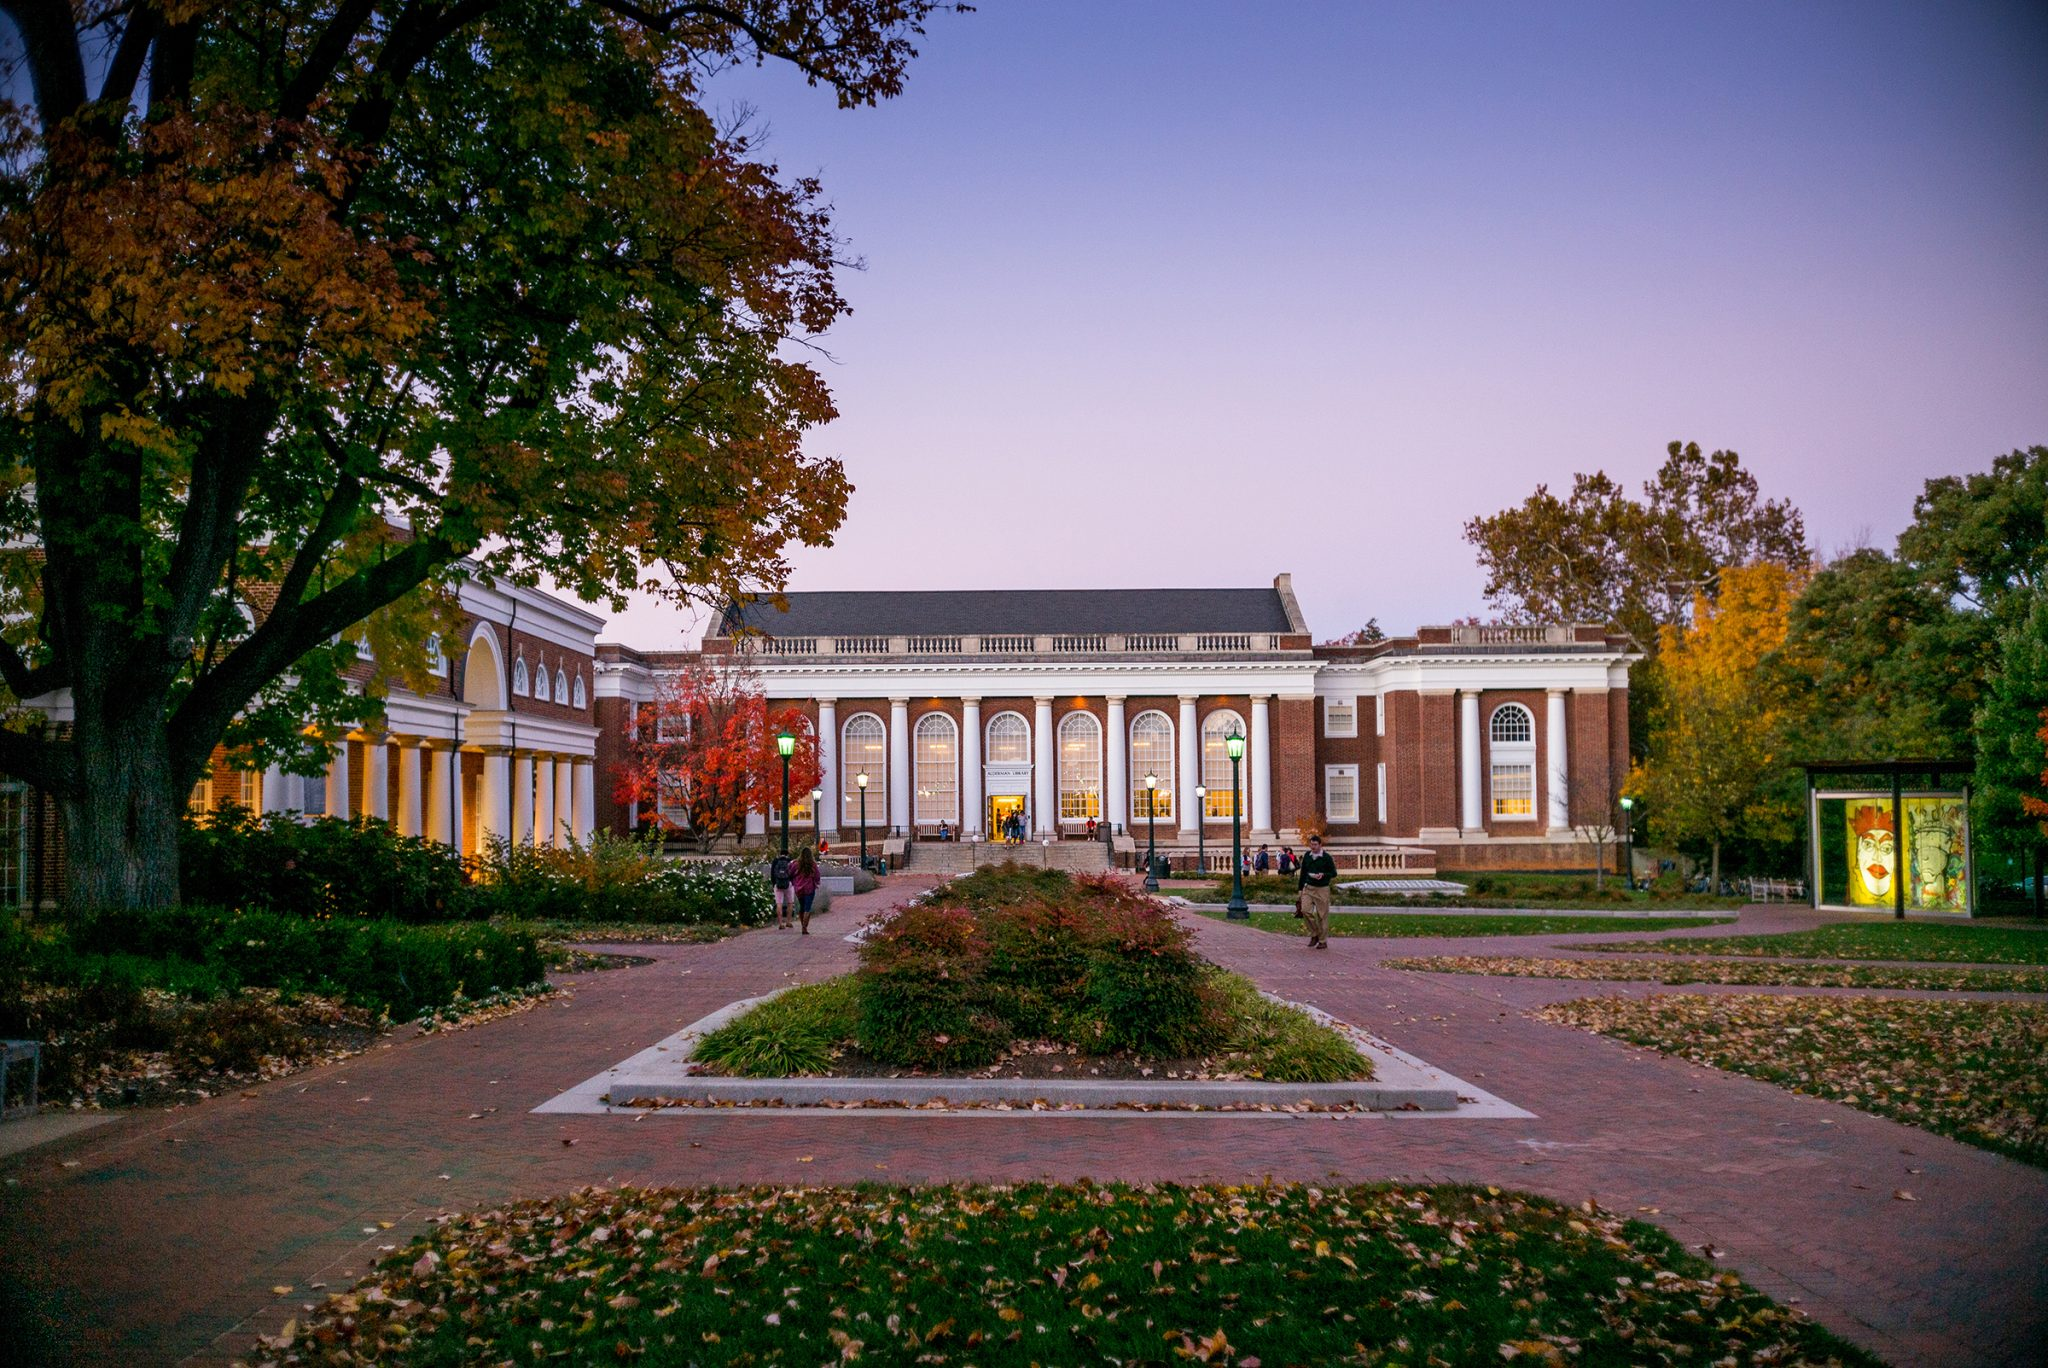 Sneak Peak: UVA Unveils Stunning Images of Alderman Library